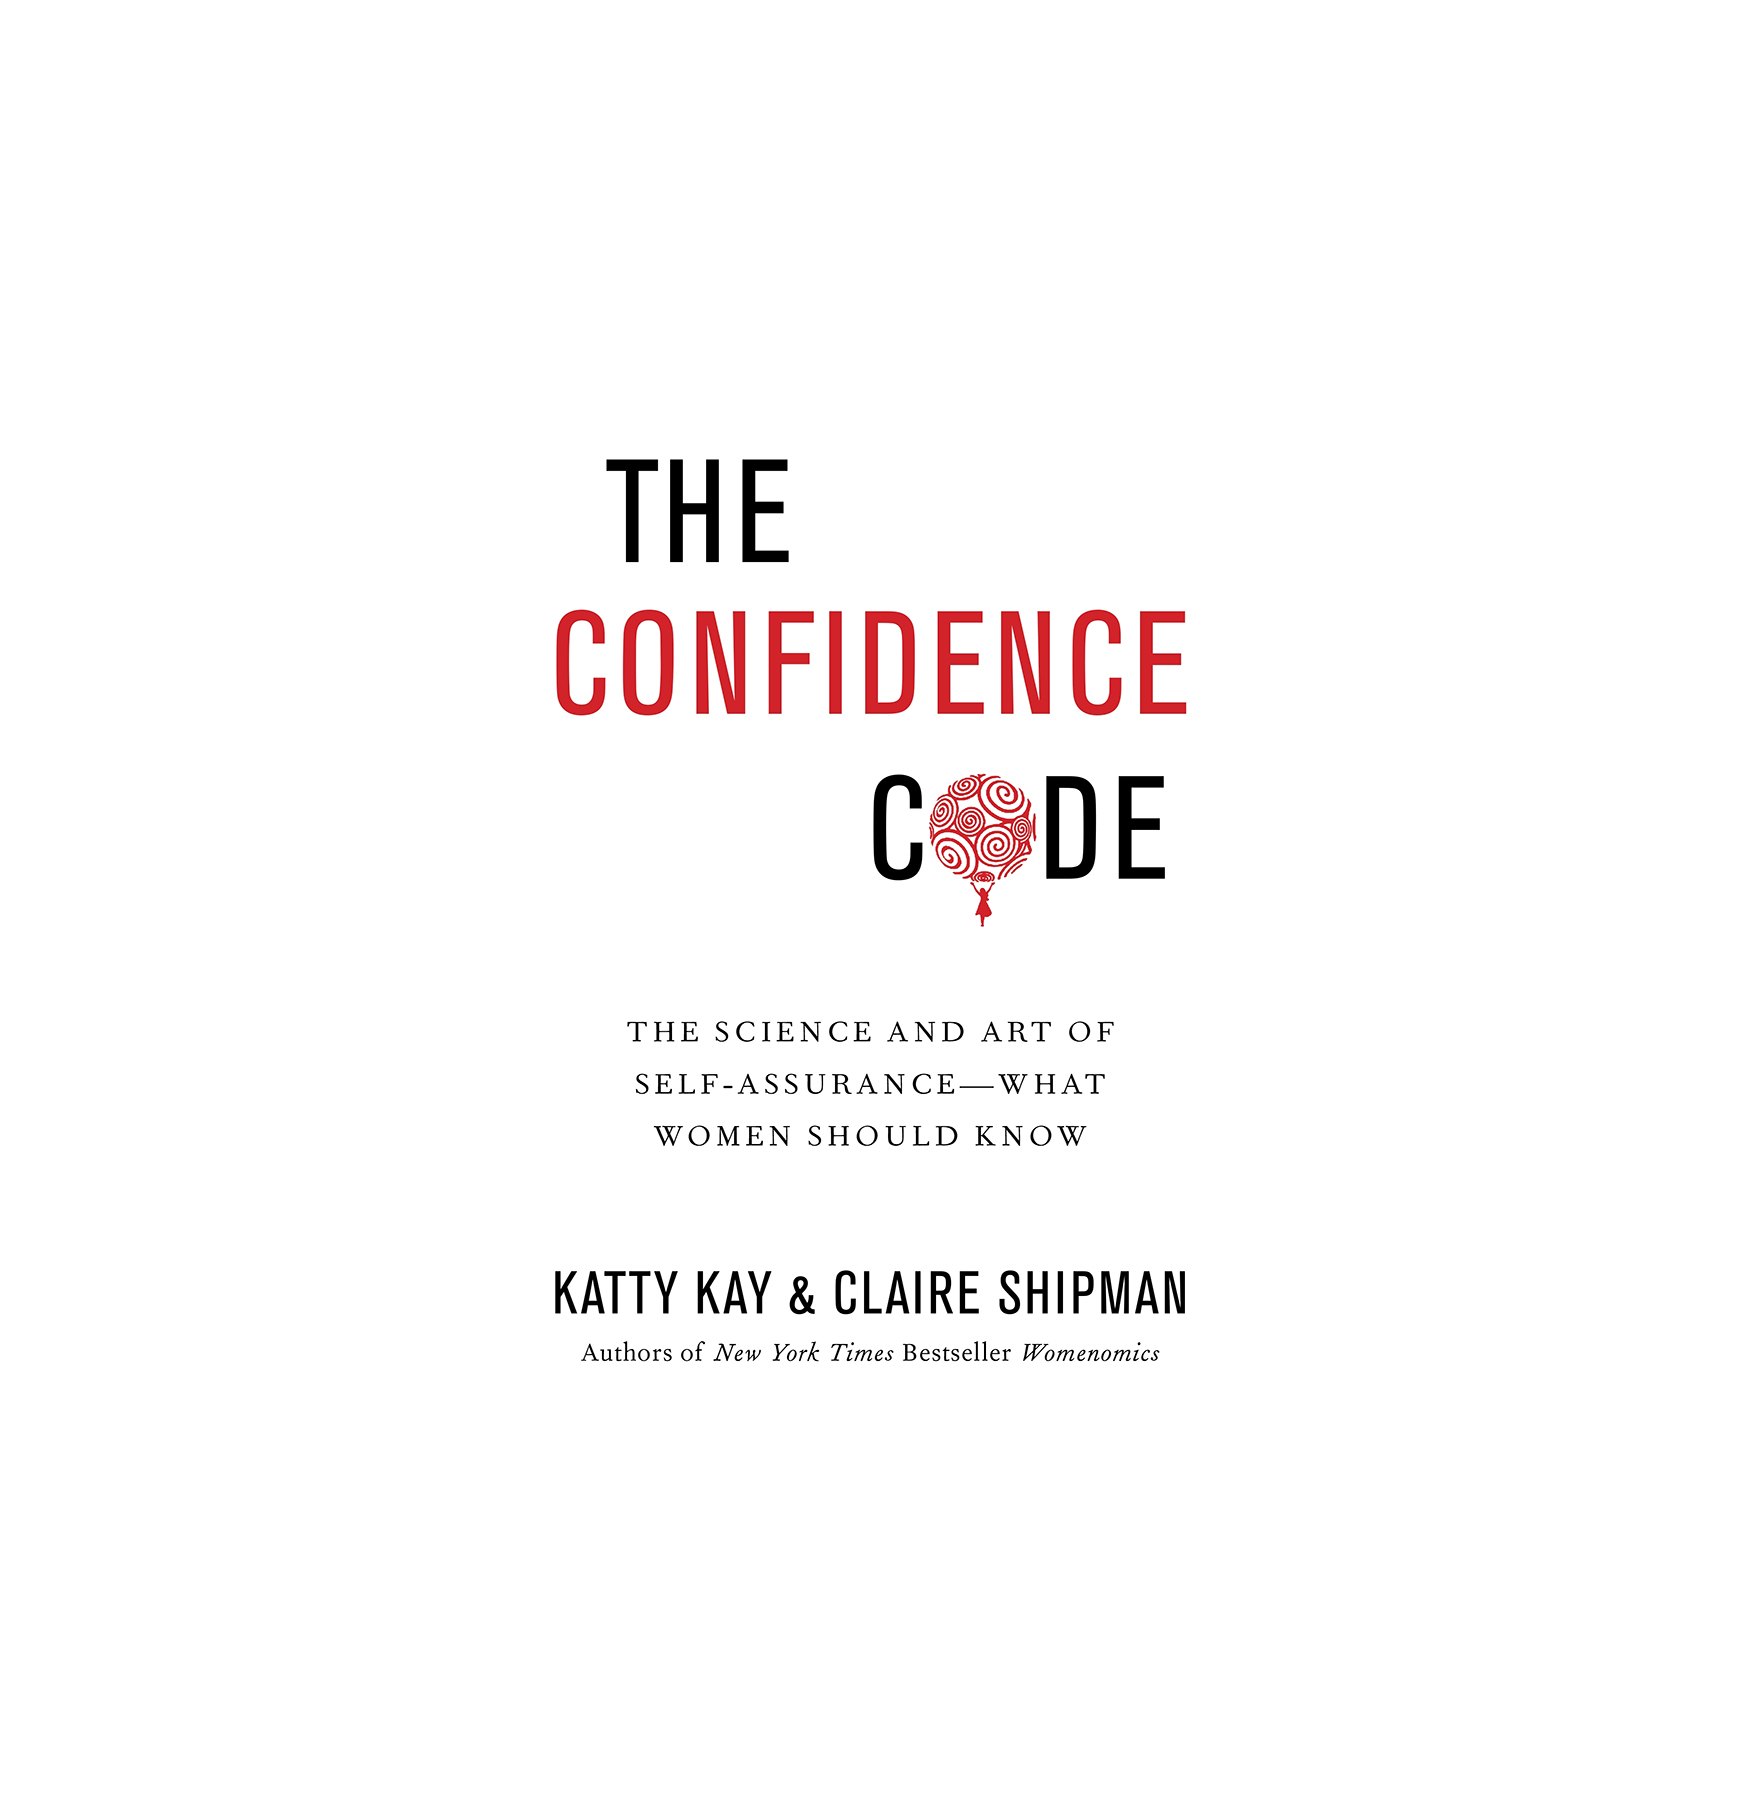 The Confidence Code, by Katty Kay and Claire Shipman